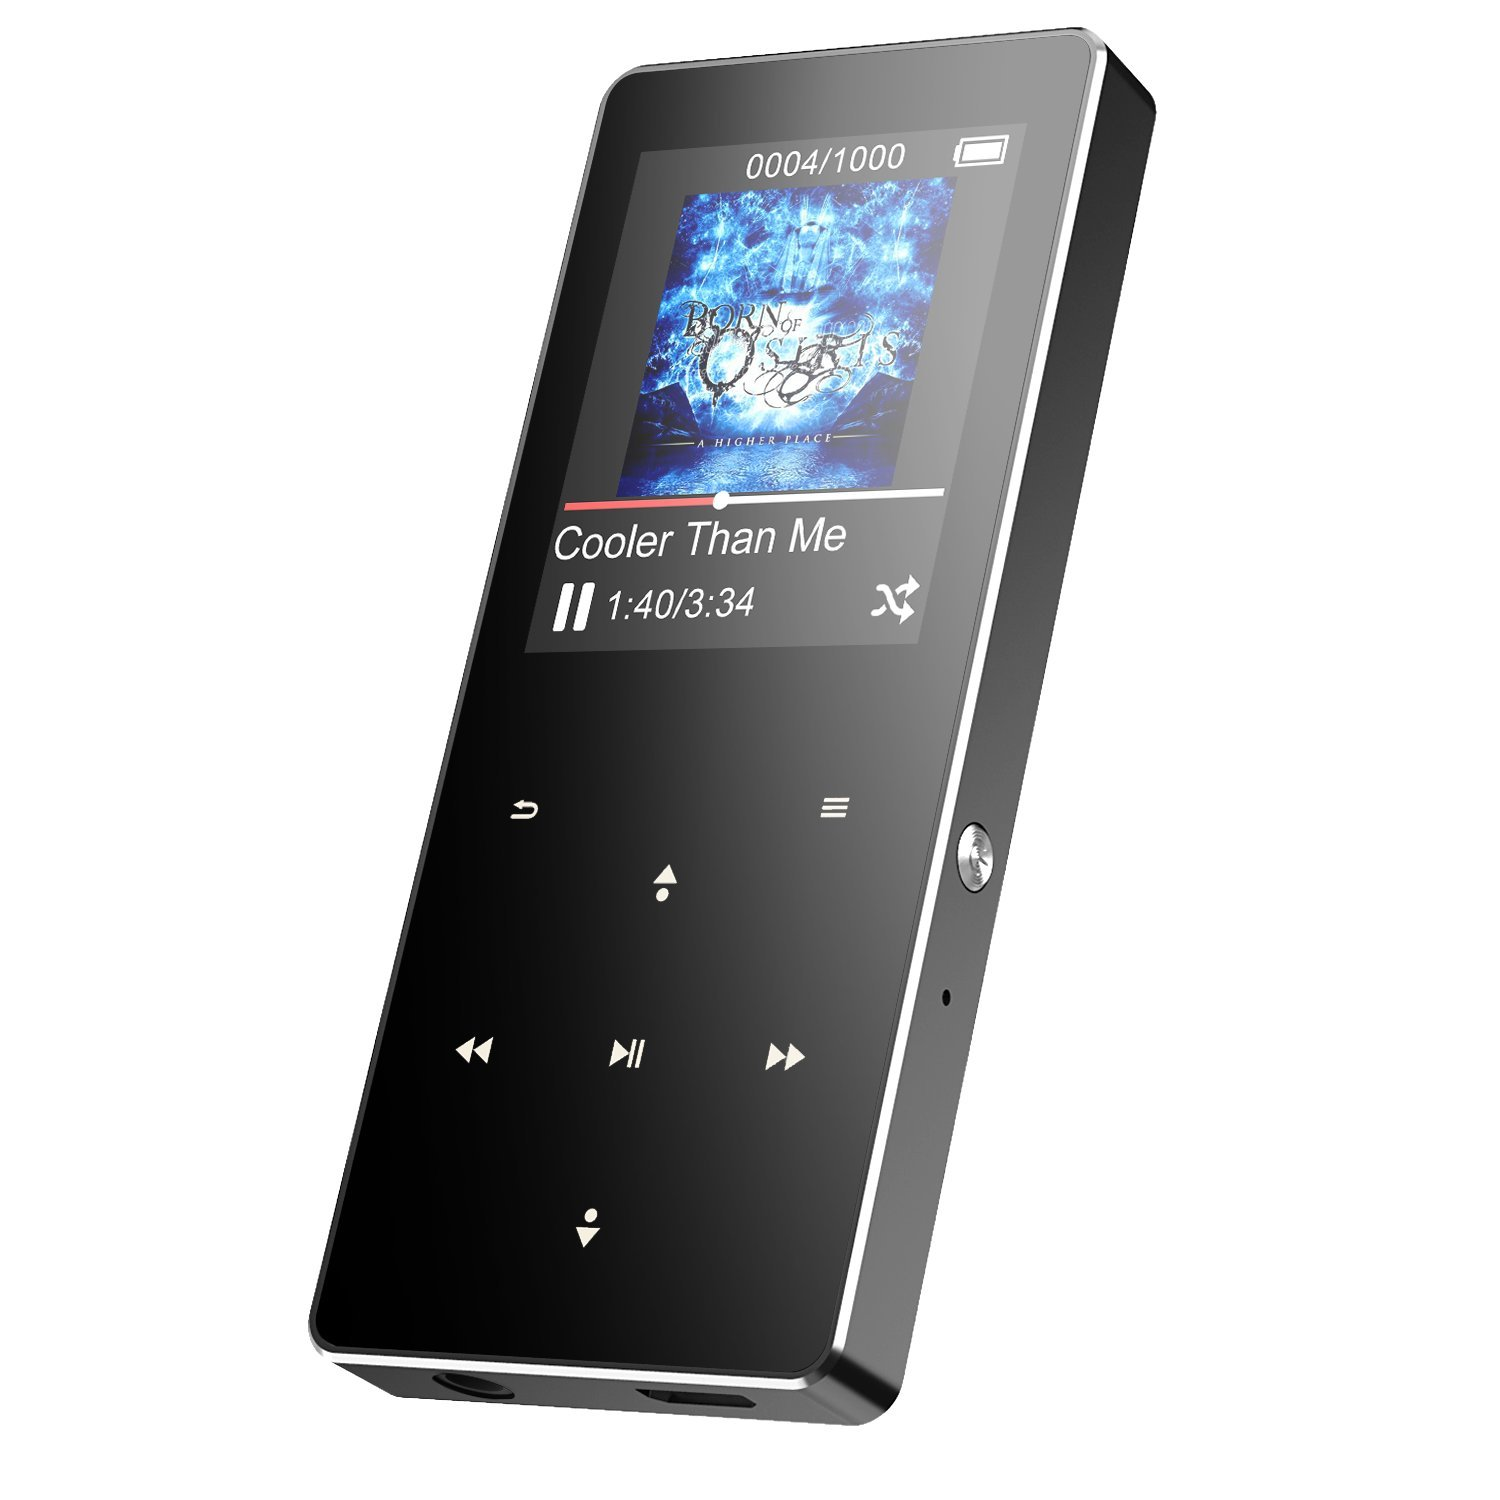 AGPTEK B05ST 16GB Bluetooth Metal MP3 Player with Touch Button, FM Radio/Voice Recorder, 1.8in TFT Color Screen, Support up to 128 GB, Grey